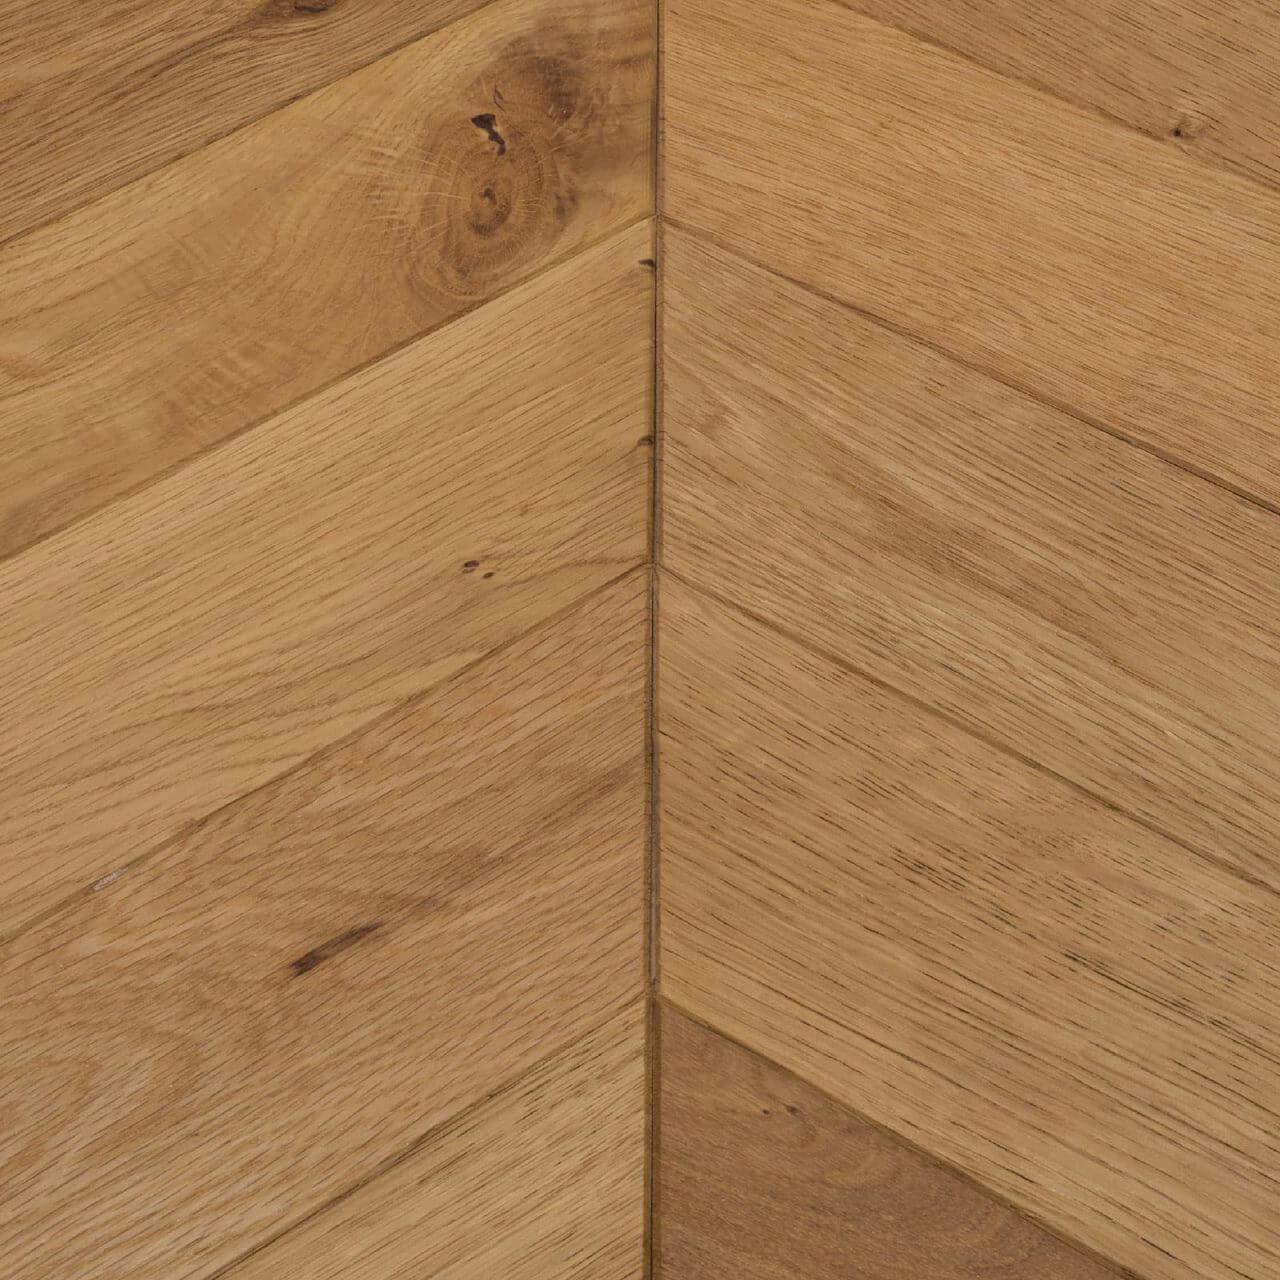 Woodpecker Goodrich Chevron Manor Oak Brushed & Matt Lacquered Engineered Wood Flooring 32-MNO-001